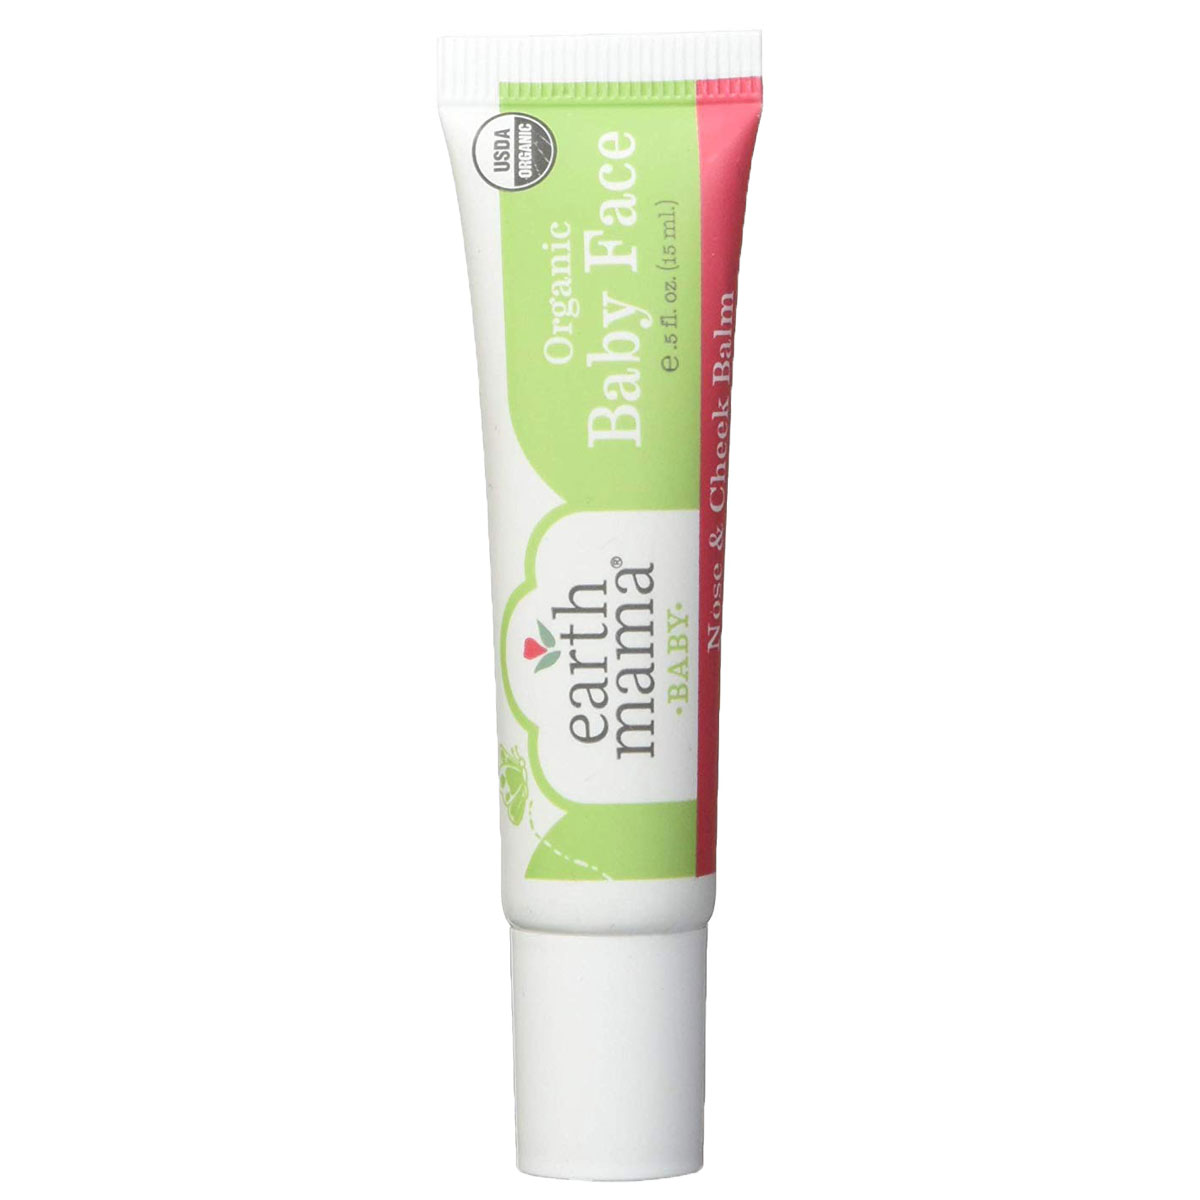 Earth Mama Nose & Cheek Balm (15ml)